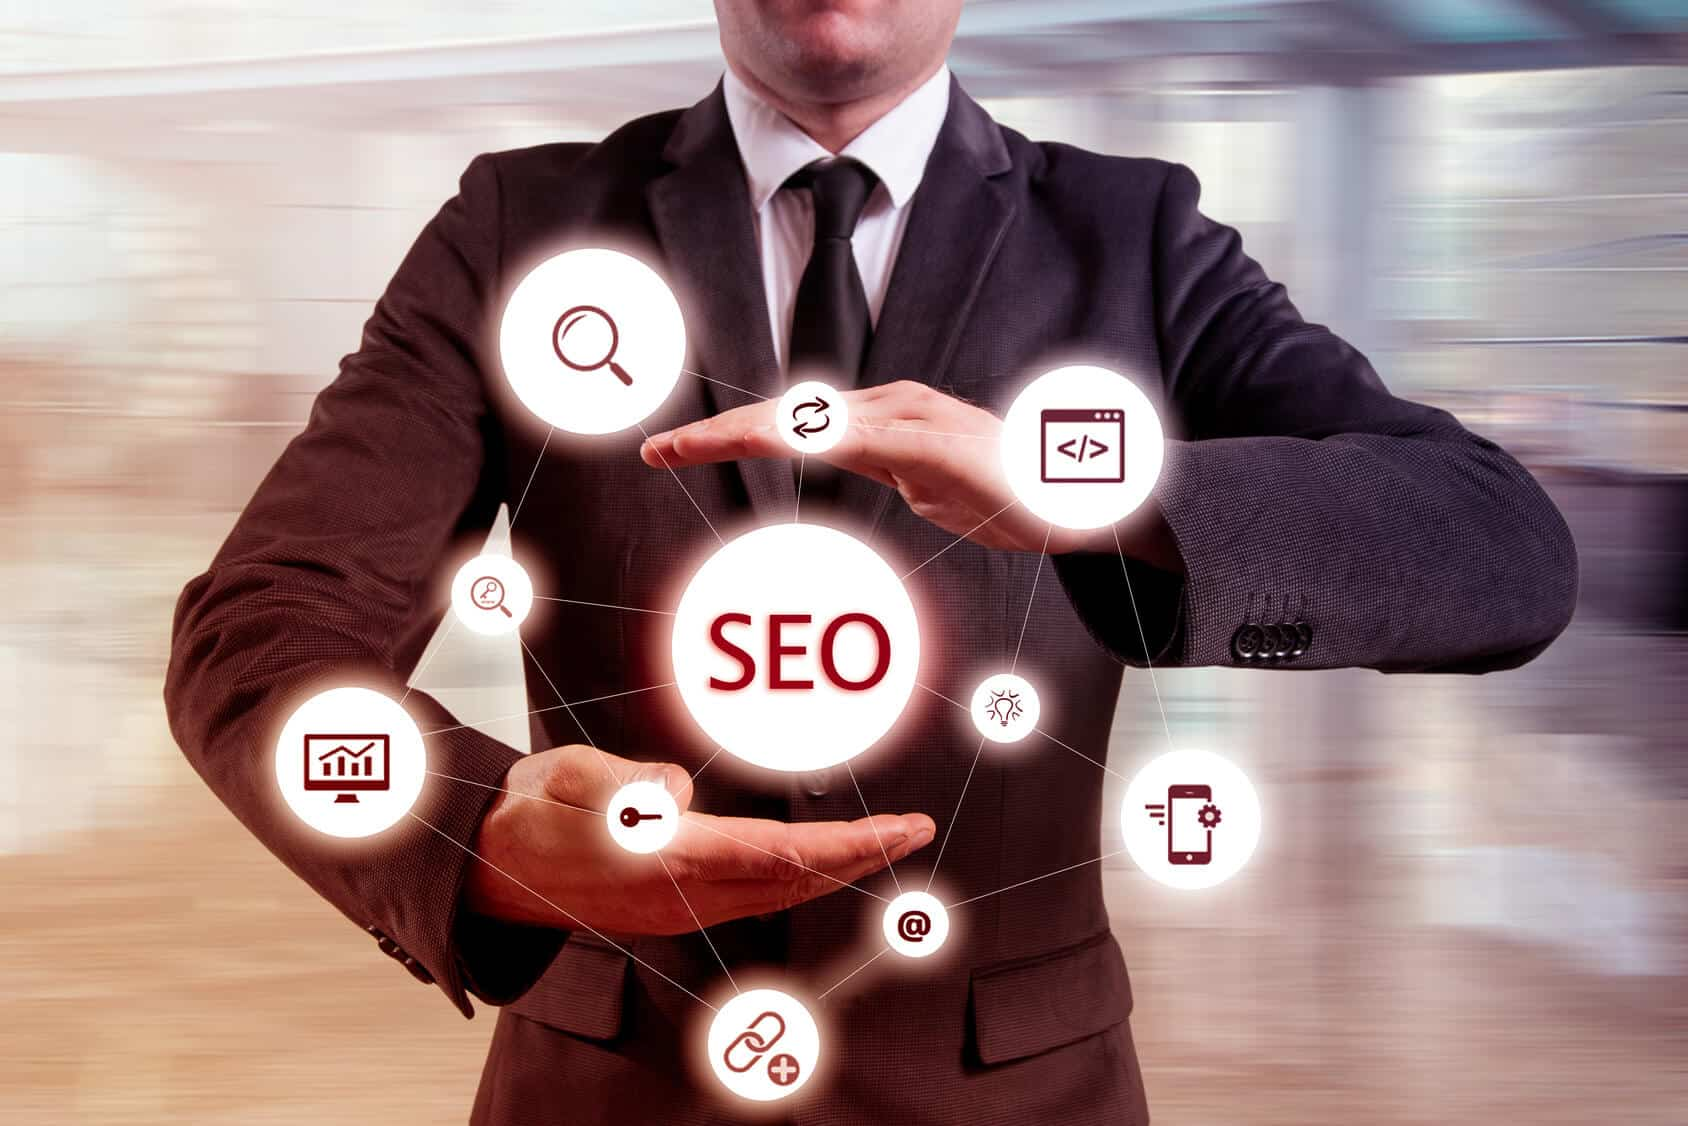 5 Questions to Ask When Hiring an SEO Specialist